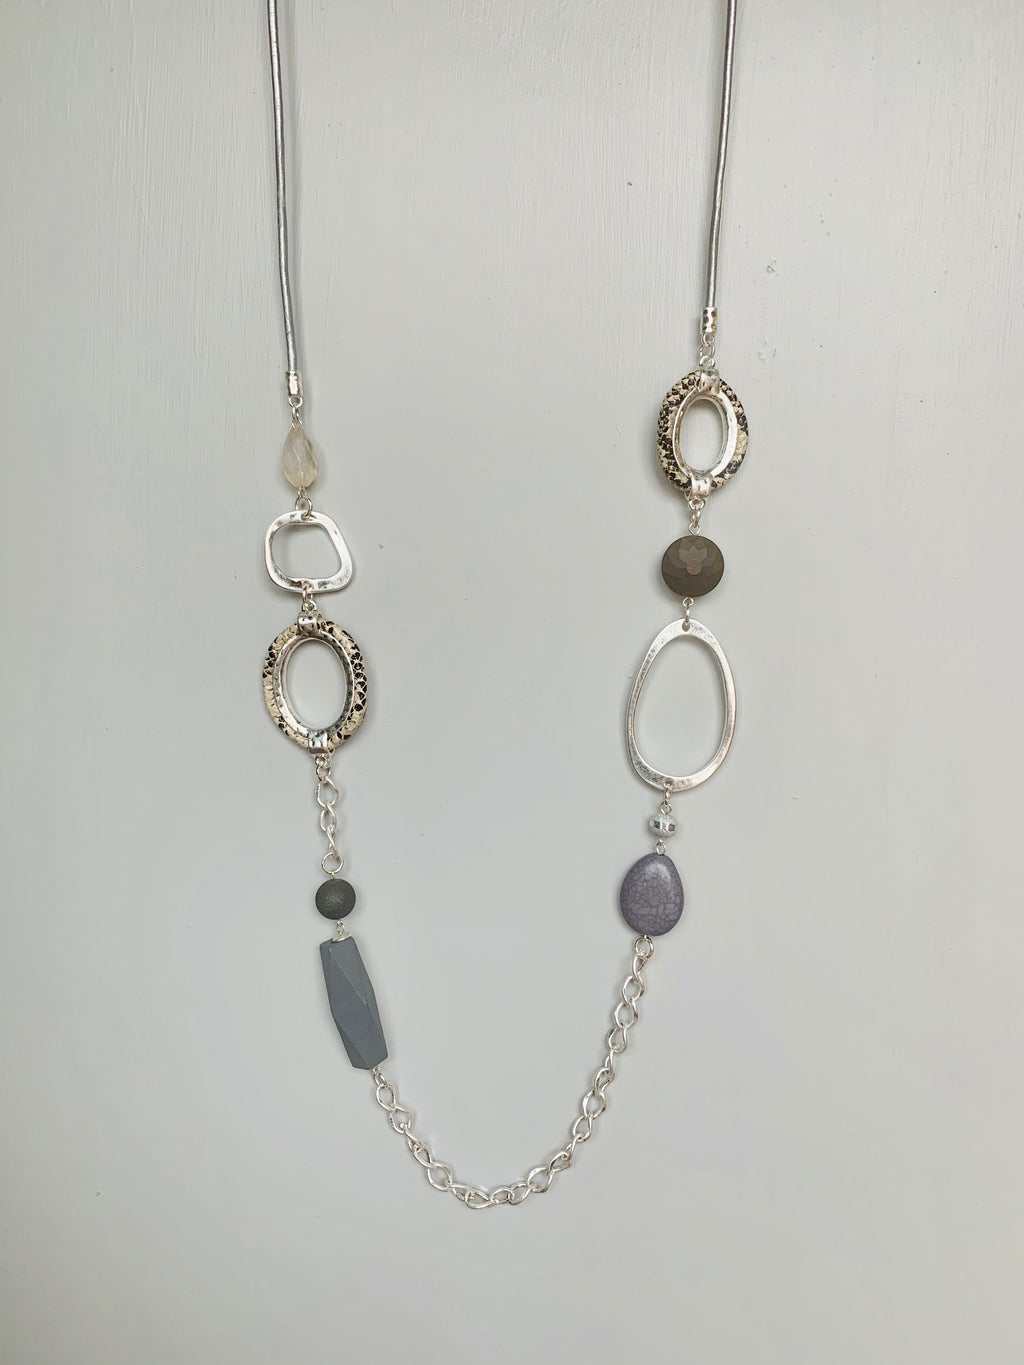 Silver & Grey Snakeskin Necklace - Gift Shop Wrought 'n Apples